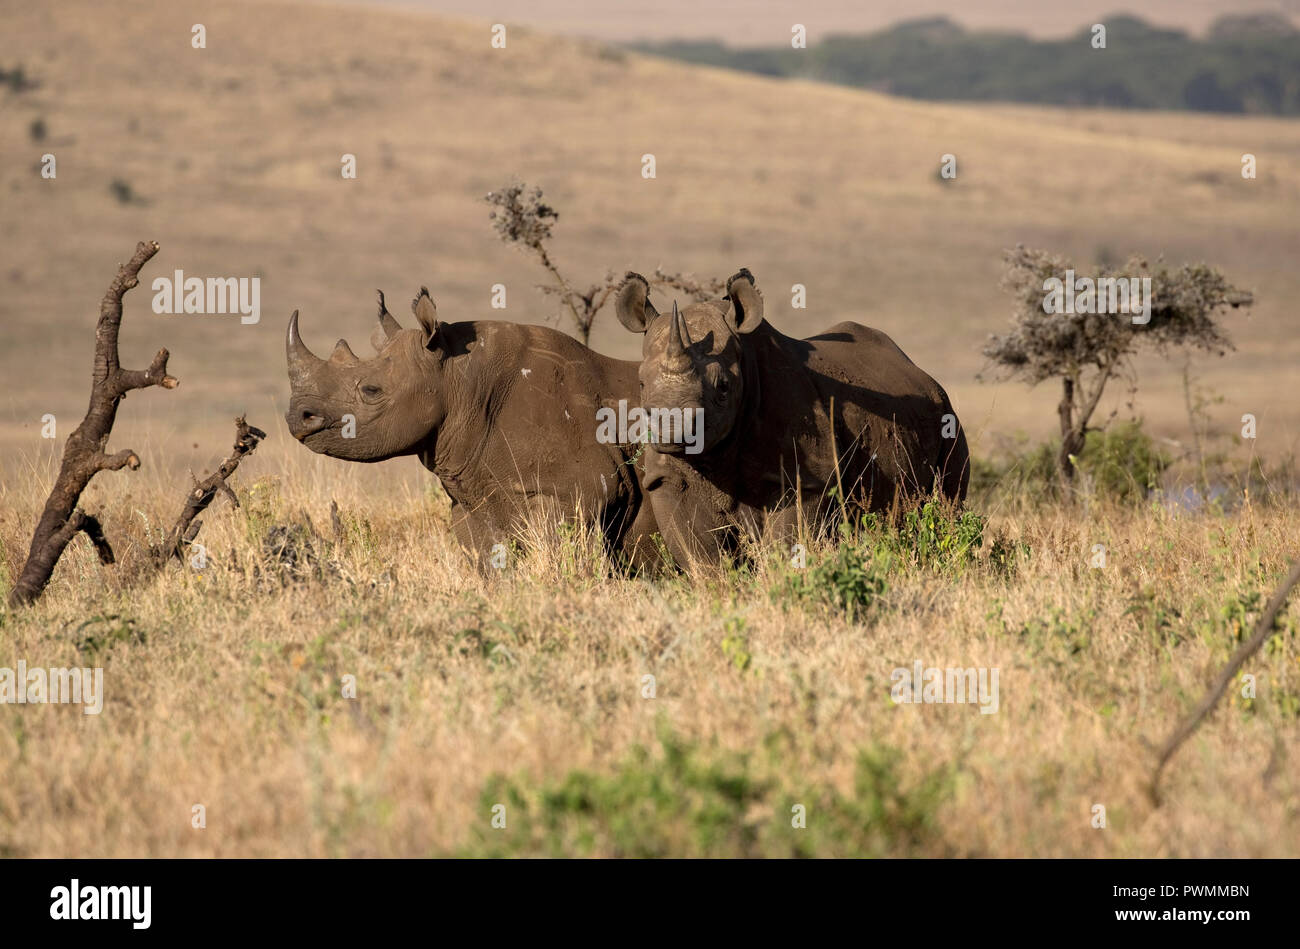 Two Black rhino Diceros bicornis at Lewa Wildlife Conservancy Kenya a vitally important conservation area which has built up the critically endangered - Stock Image